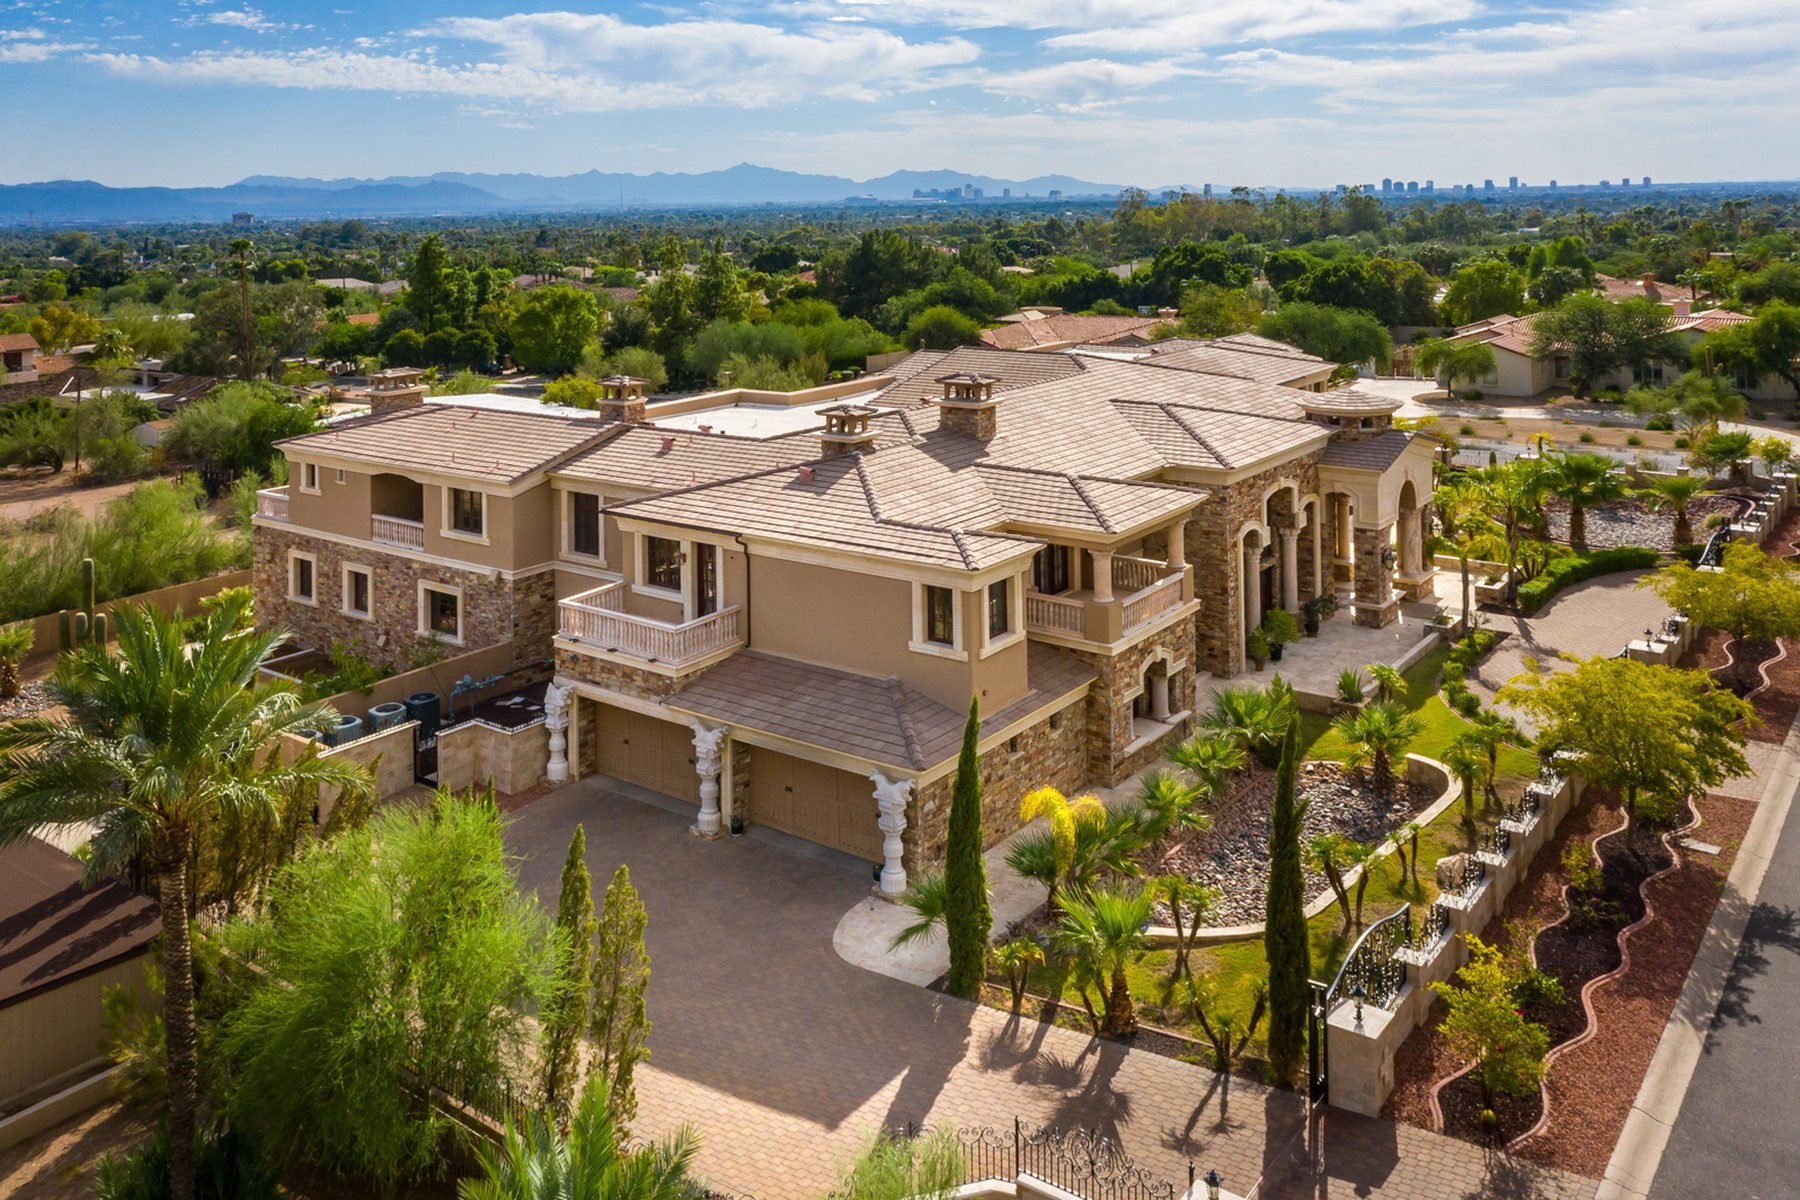 Single Family Homes for Active at Highlands 3 5301 E WONDERVIEW RD Phoenix, Arizona 85018 United States